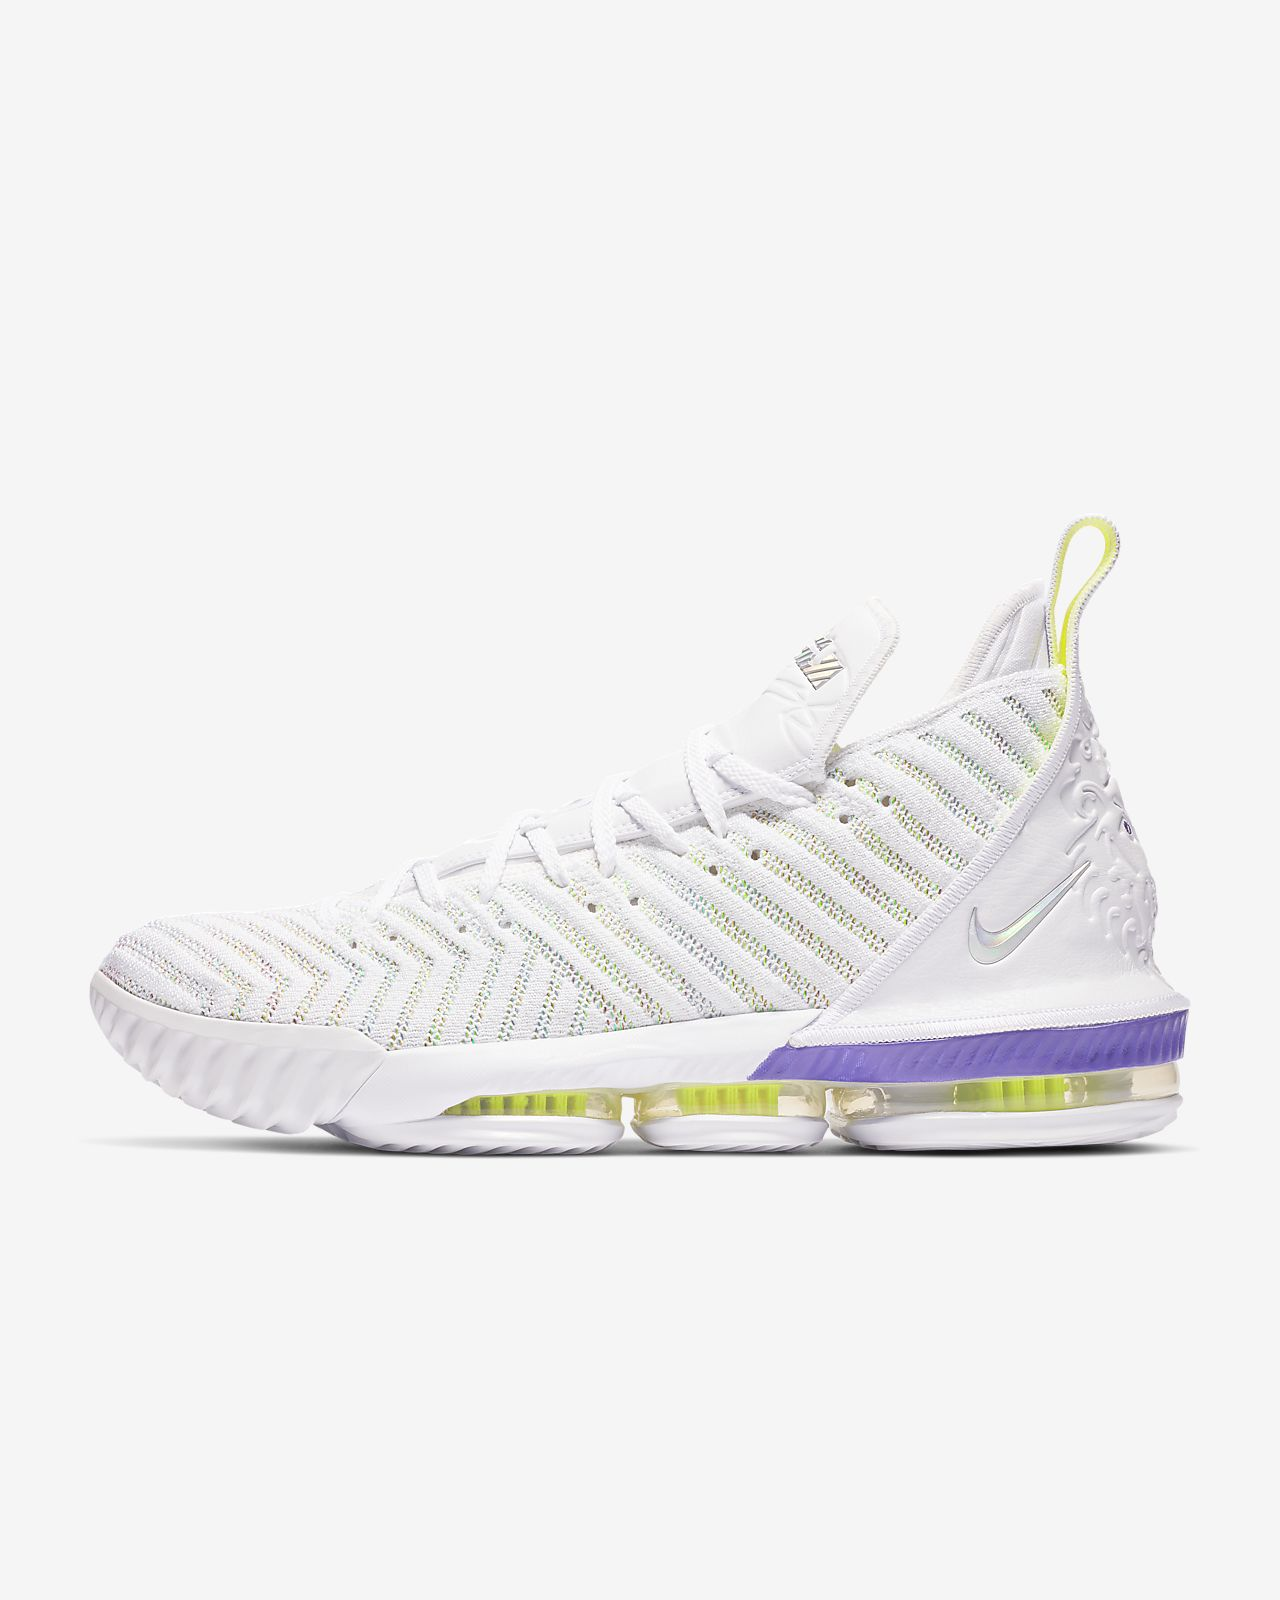 promo code 6dfbf 1f44b Low Resolution Chaussure de basketball LeBron 16 Chaussure de basketball  LeBron 16